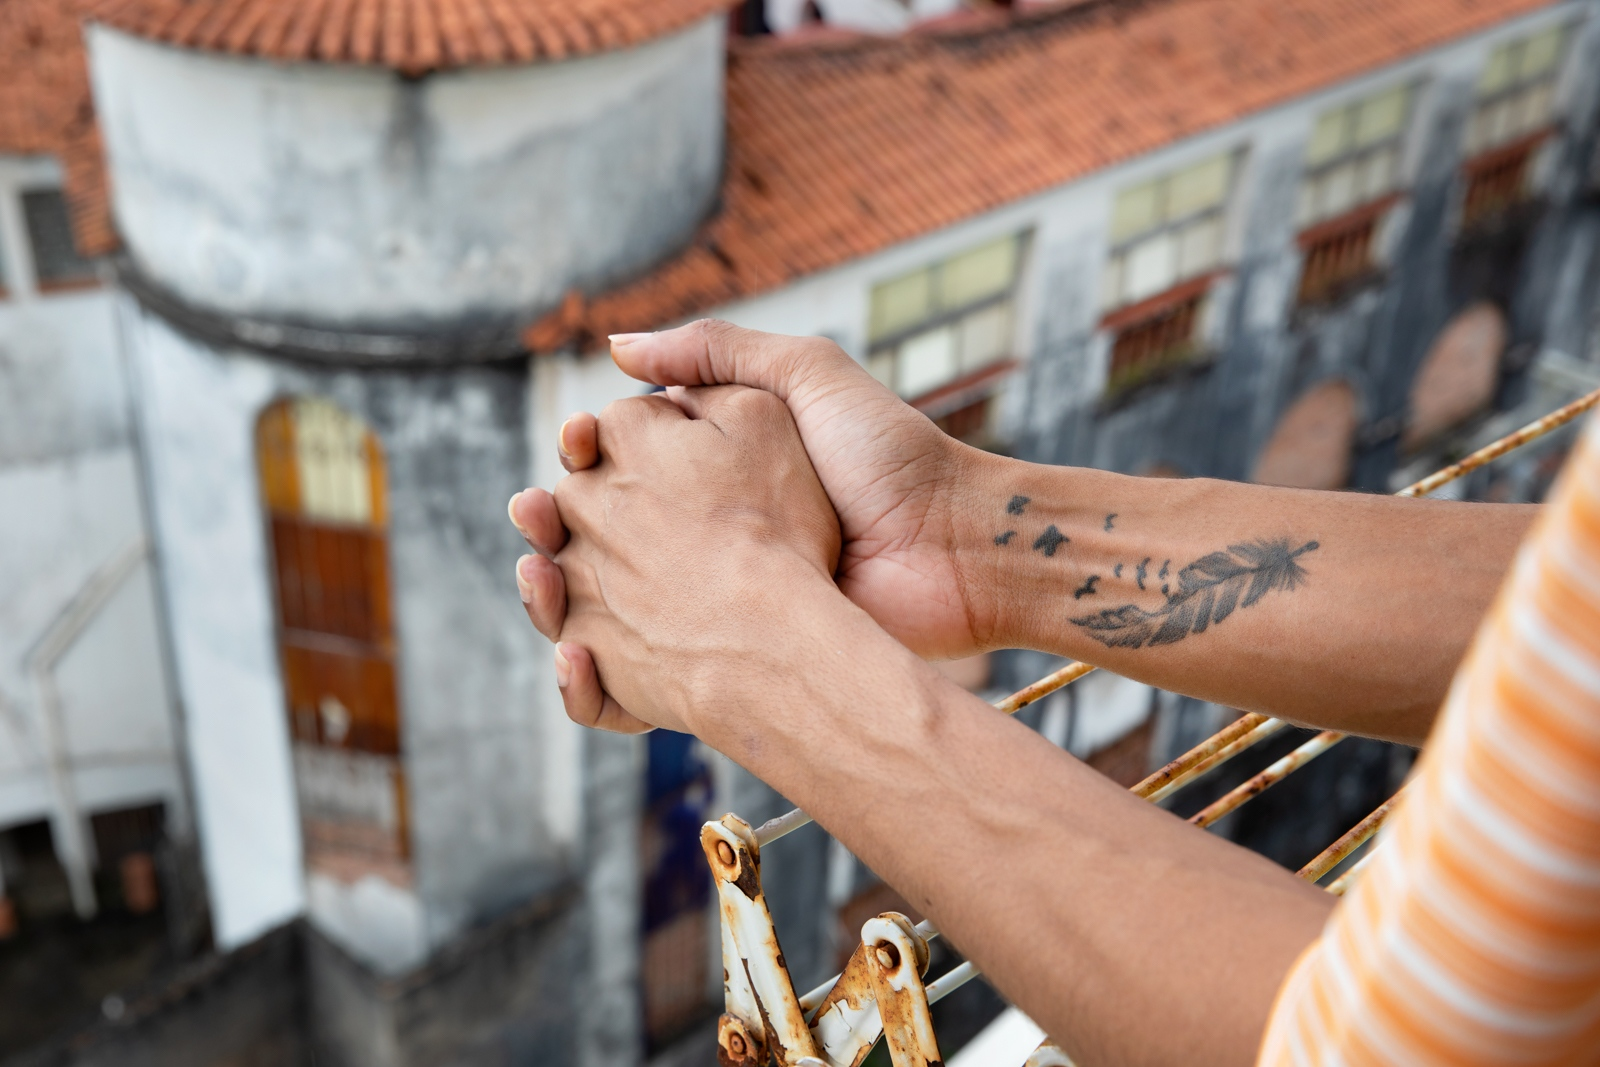 """Teodoro, 28, stands at the window. His tattoo symbolise the """"penas"""" (feathers, also mean sorrows in Portuguese) transforming in free birds in the sky. Homosexual Cis, Drag Queen of Coletivo Monstras, Teodoro was a student at Architecture school and left to try his chance at the Theater Course in University of Bahia. Salvador, Bahia."""